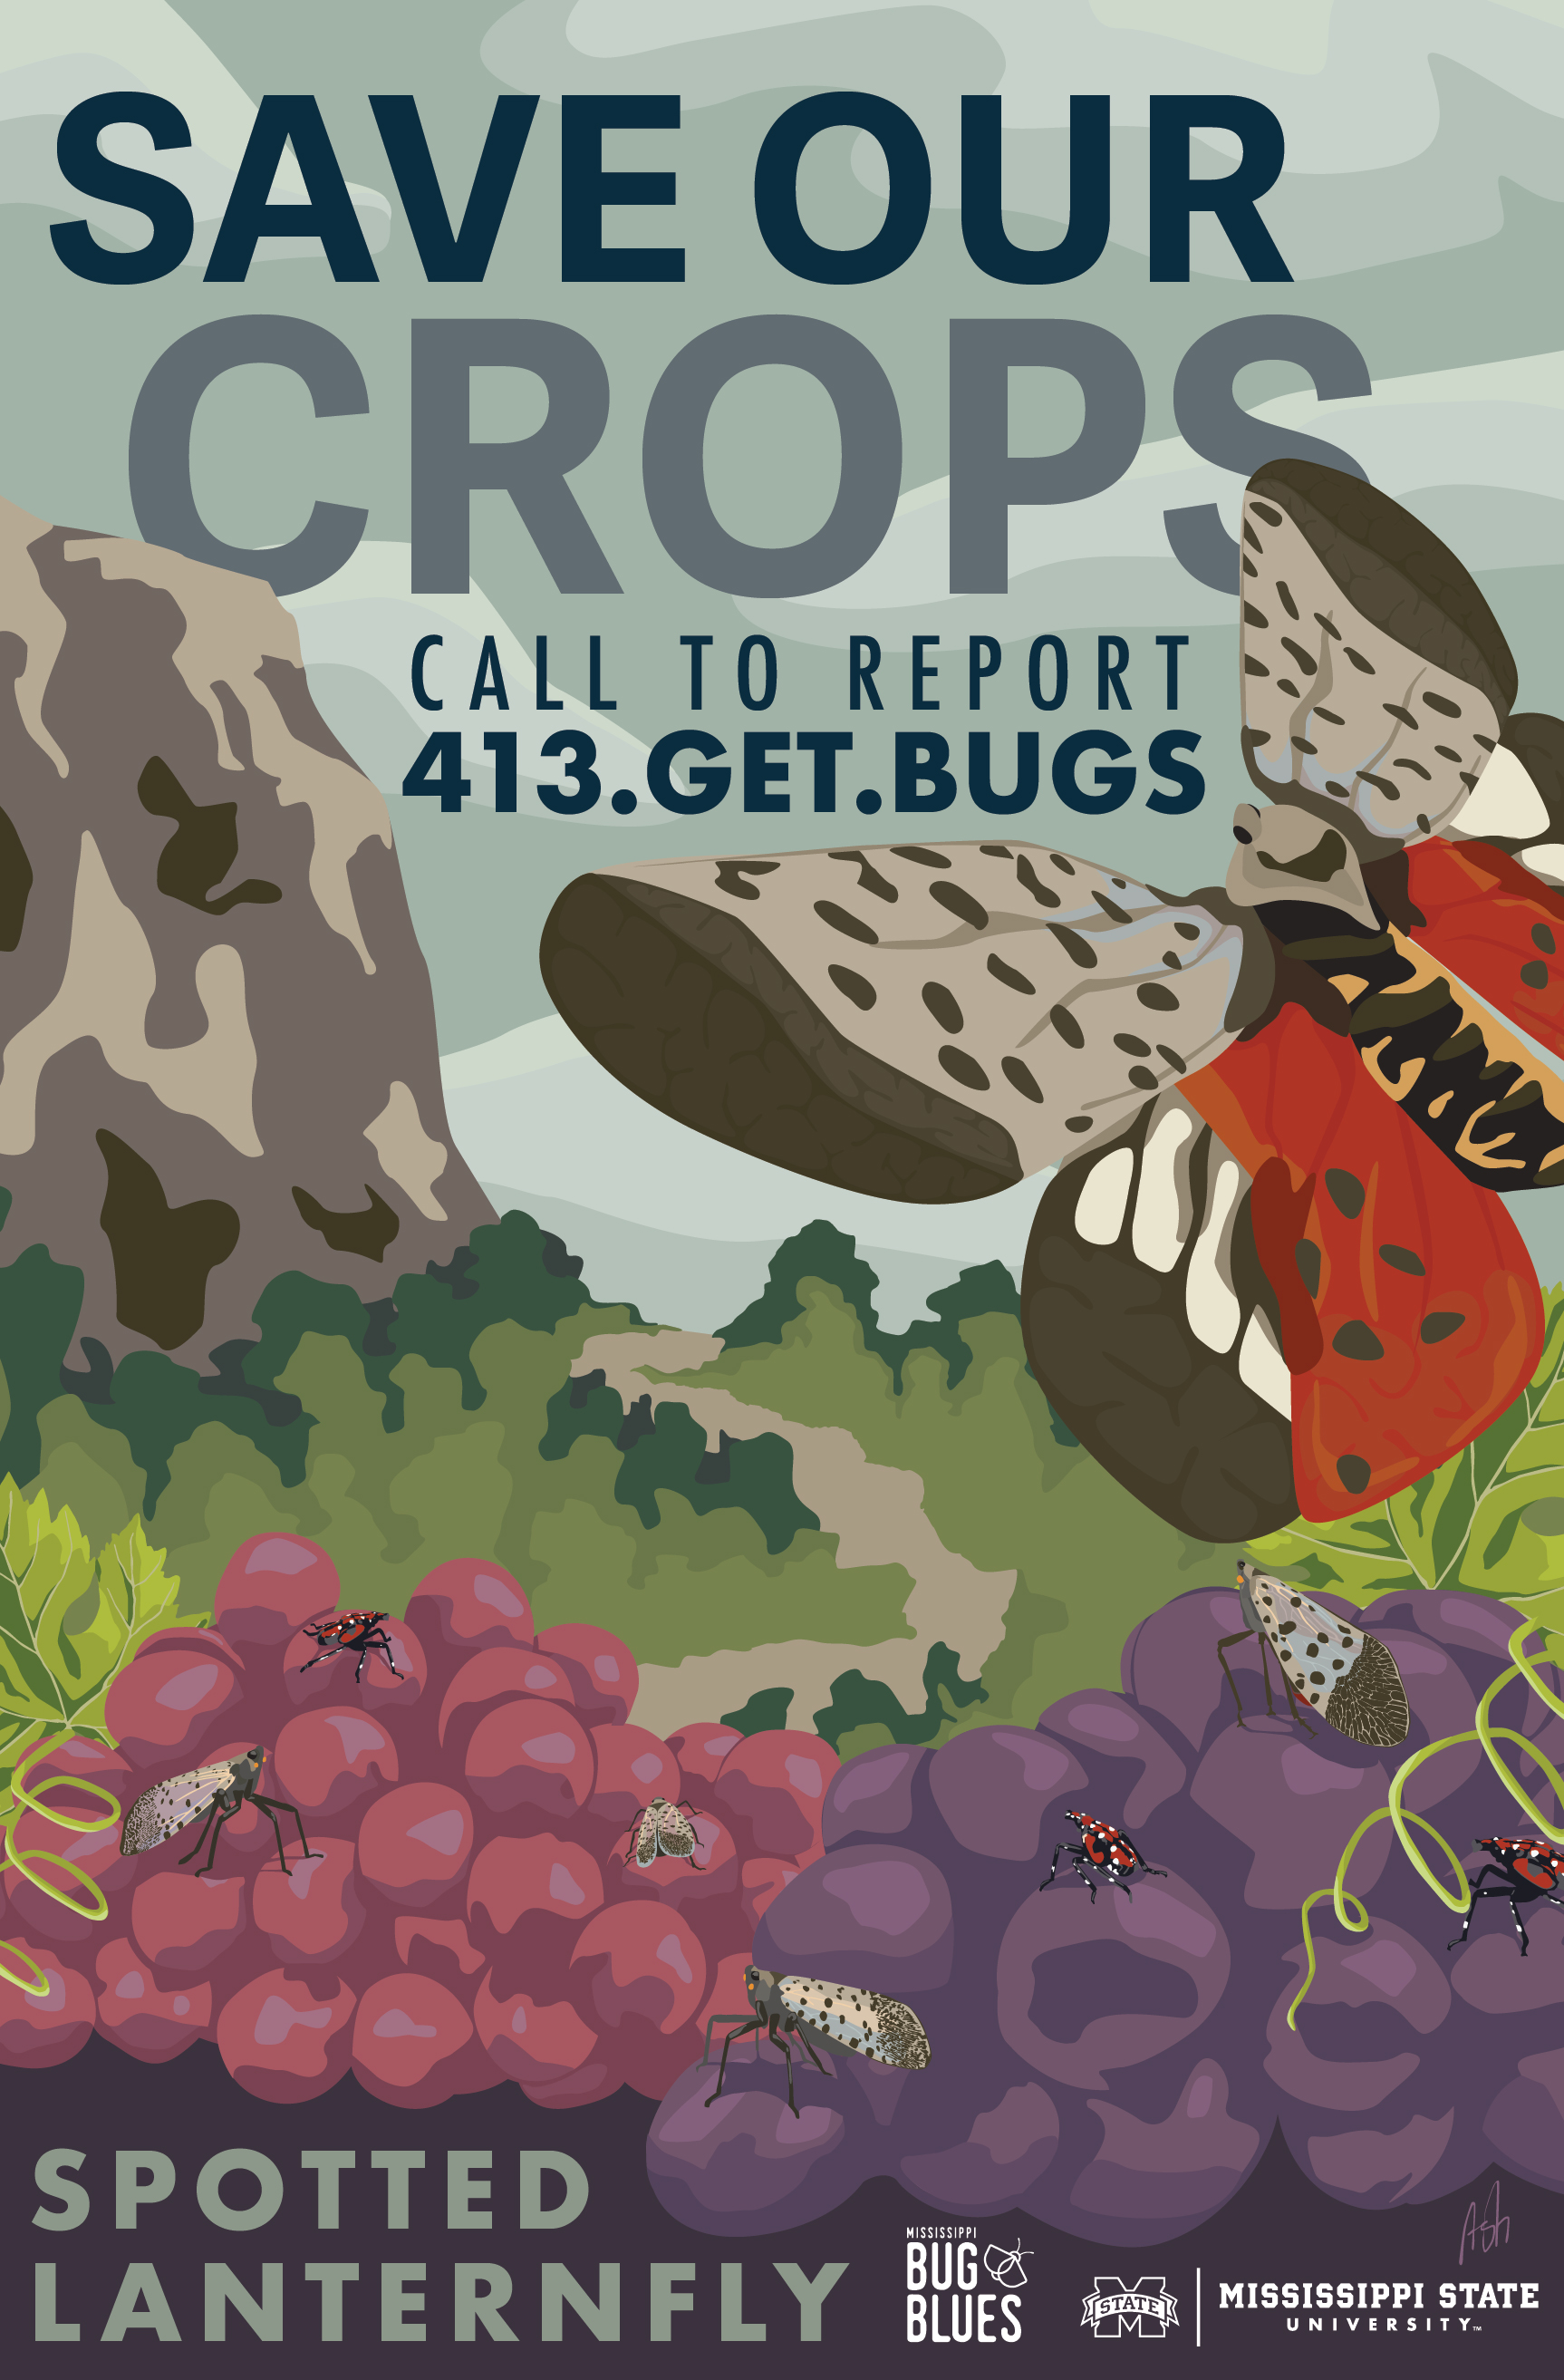 stop the spread invasive insect spotted lanternfly lantern fly awareness WPA crop crops field  grapes get bugs getbugs pdf mississippi bug blues